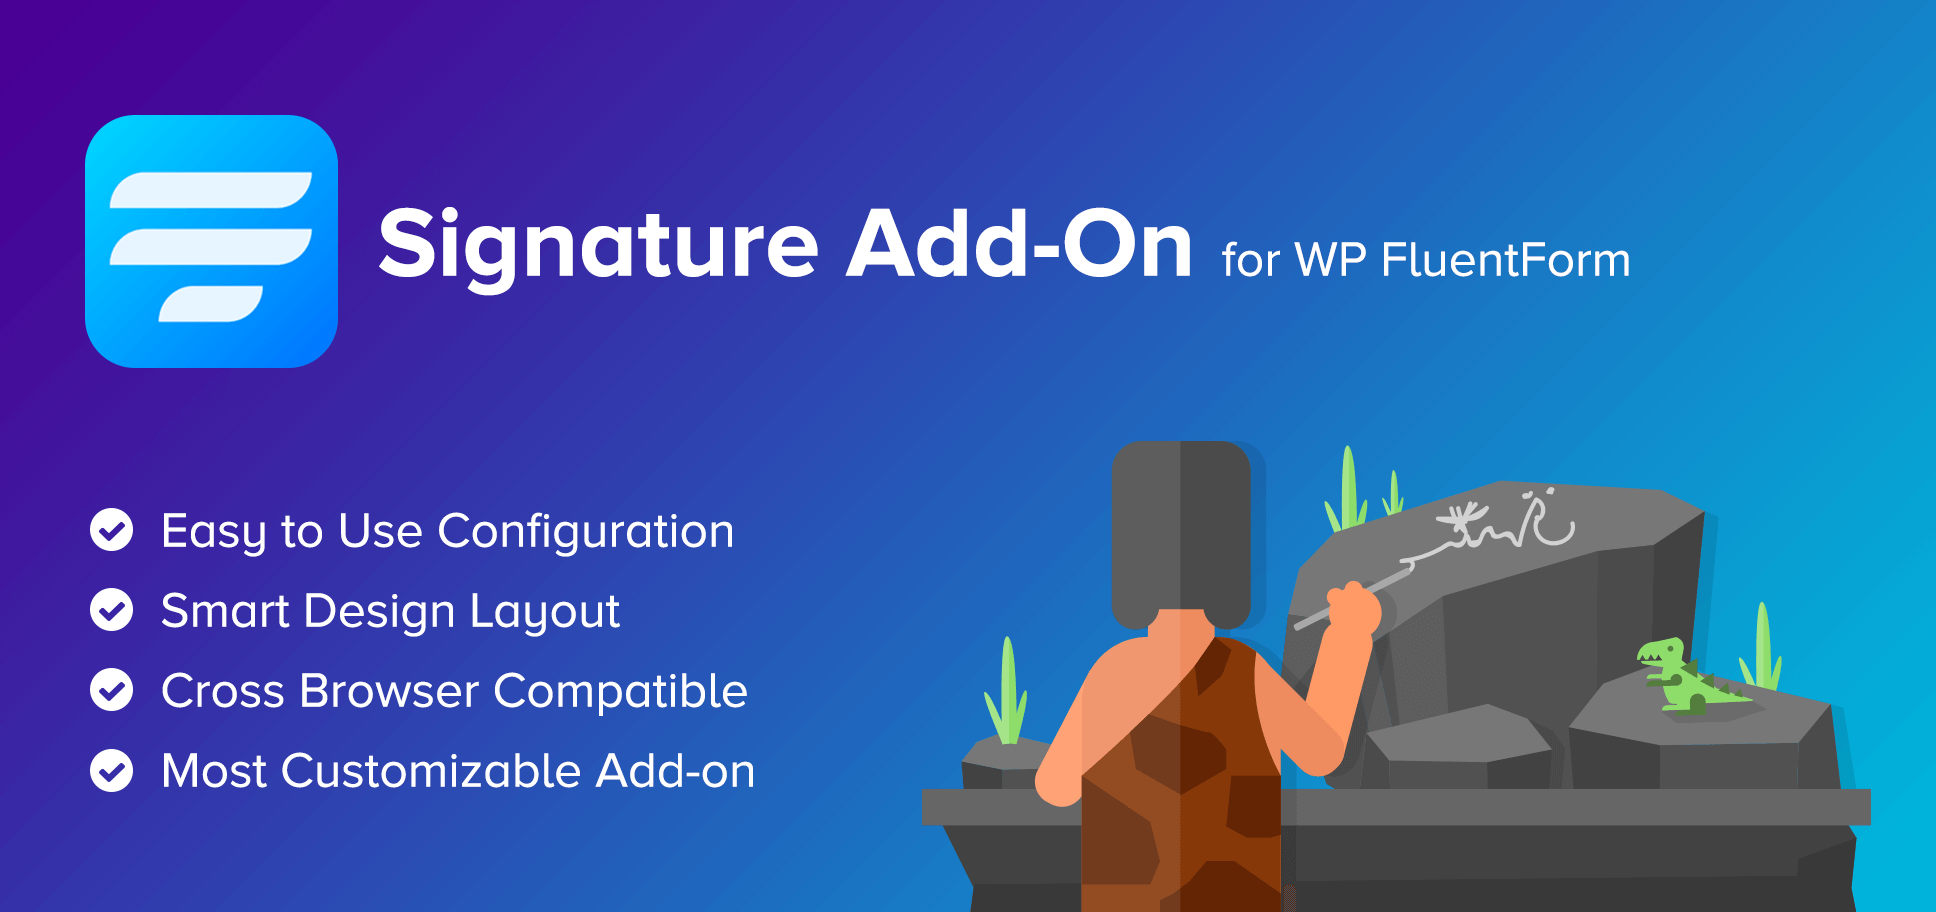 Signature Add-On for WP FluentForm